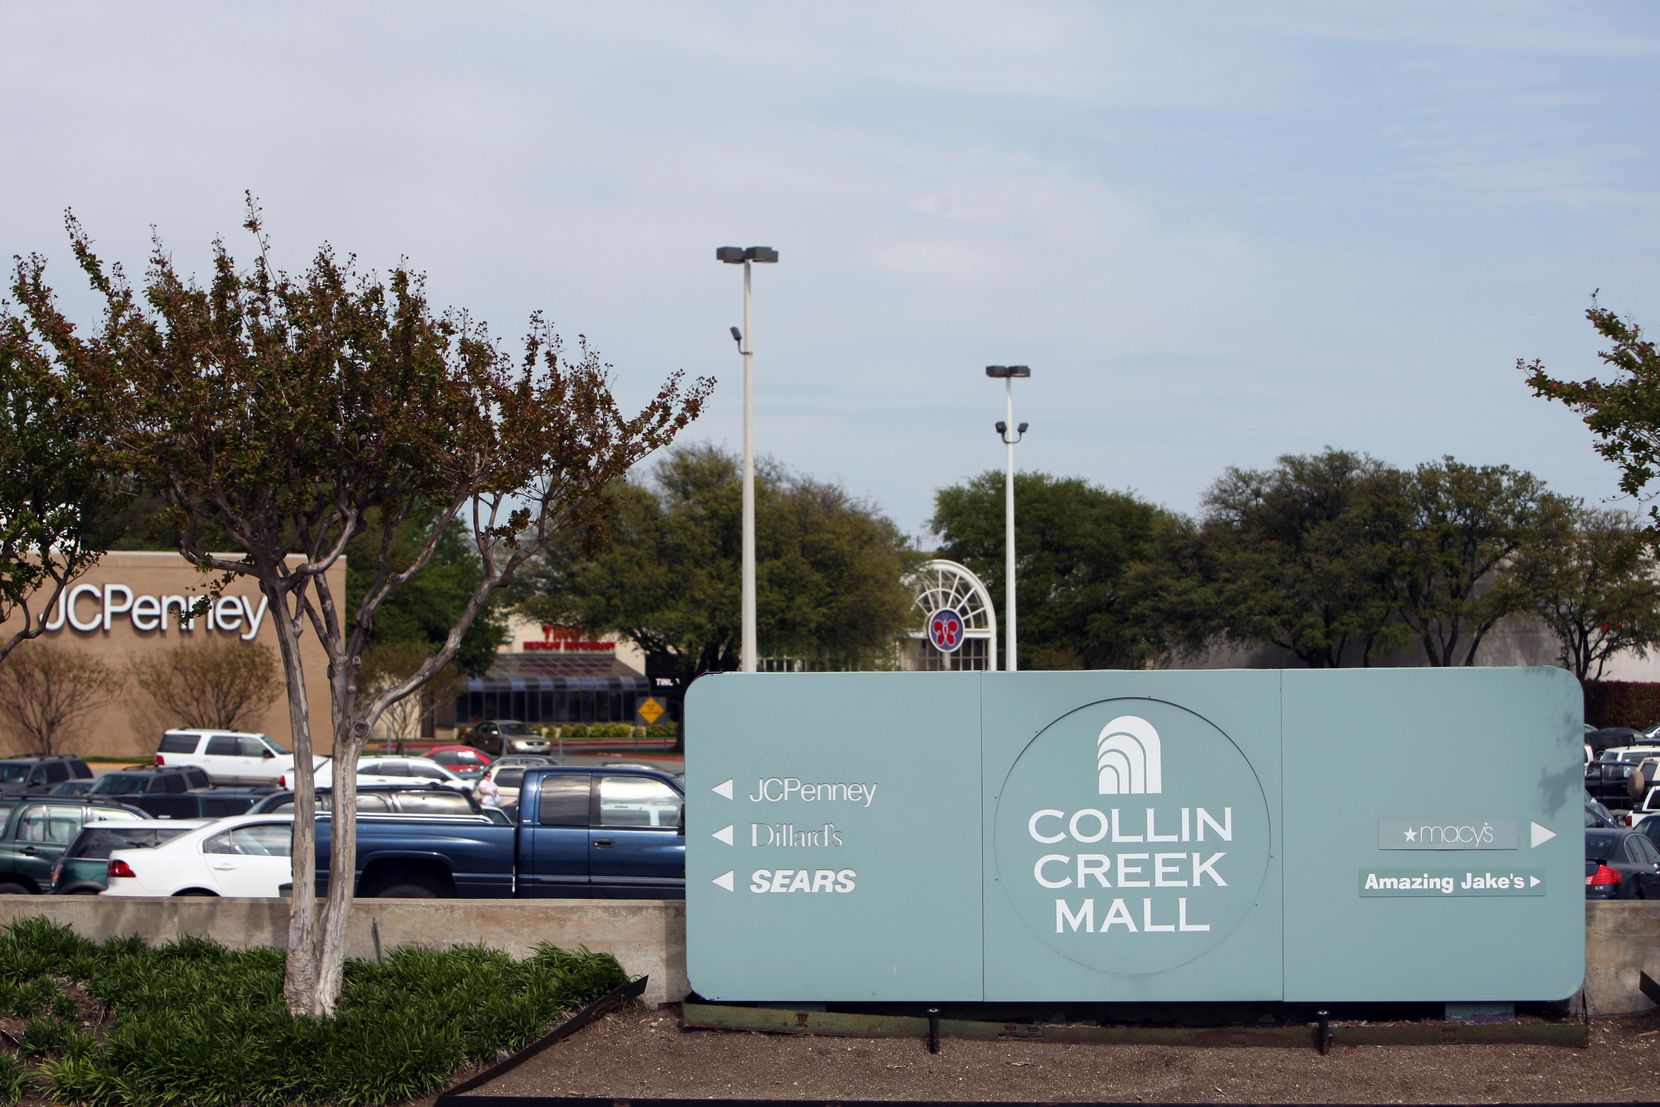 Collin Creek Mall in Plano opened in 1981 and has lost many of its retail tenants.